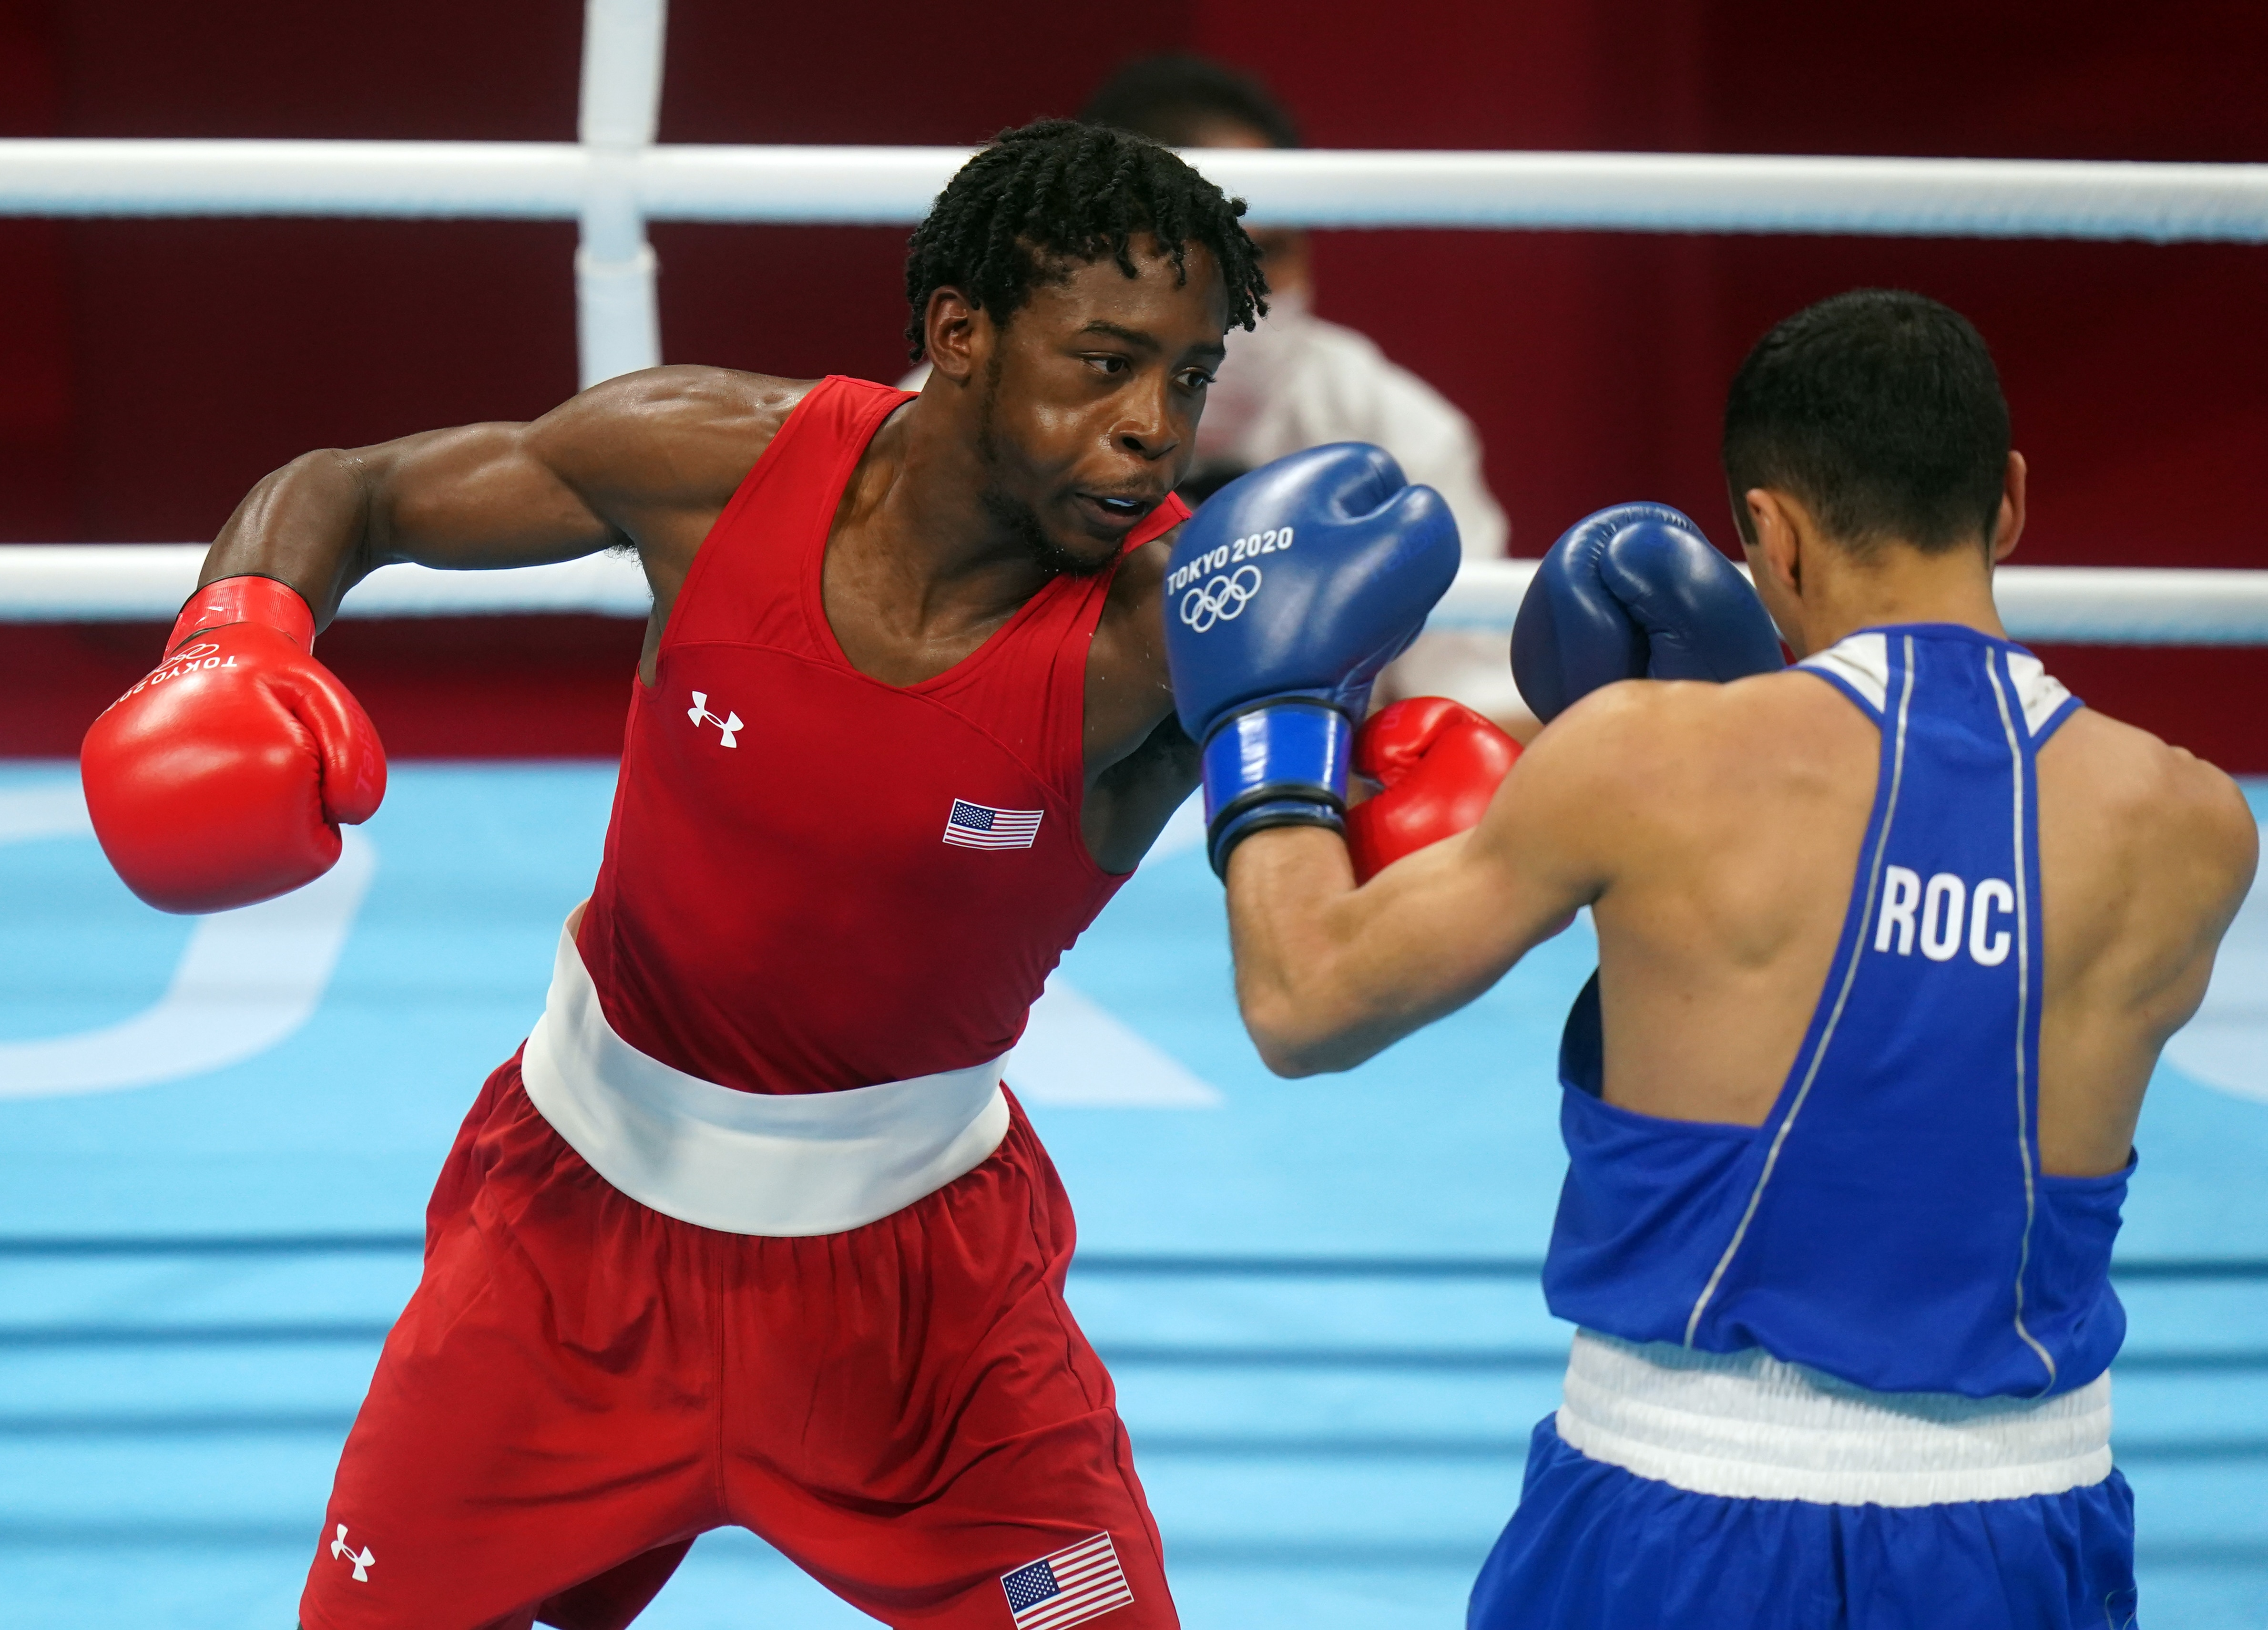 Image for U.S. lightweight Davis clinches boxing medal, looks to end men's gold-medal drought